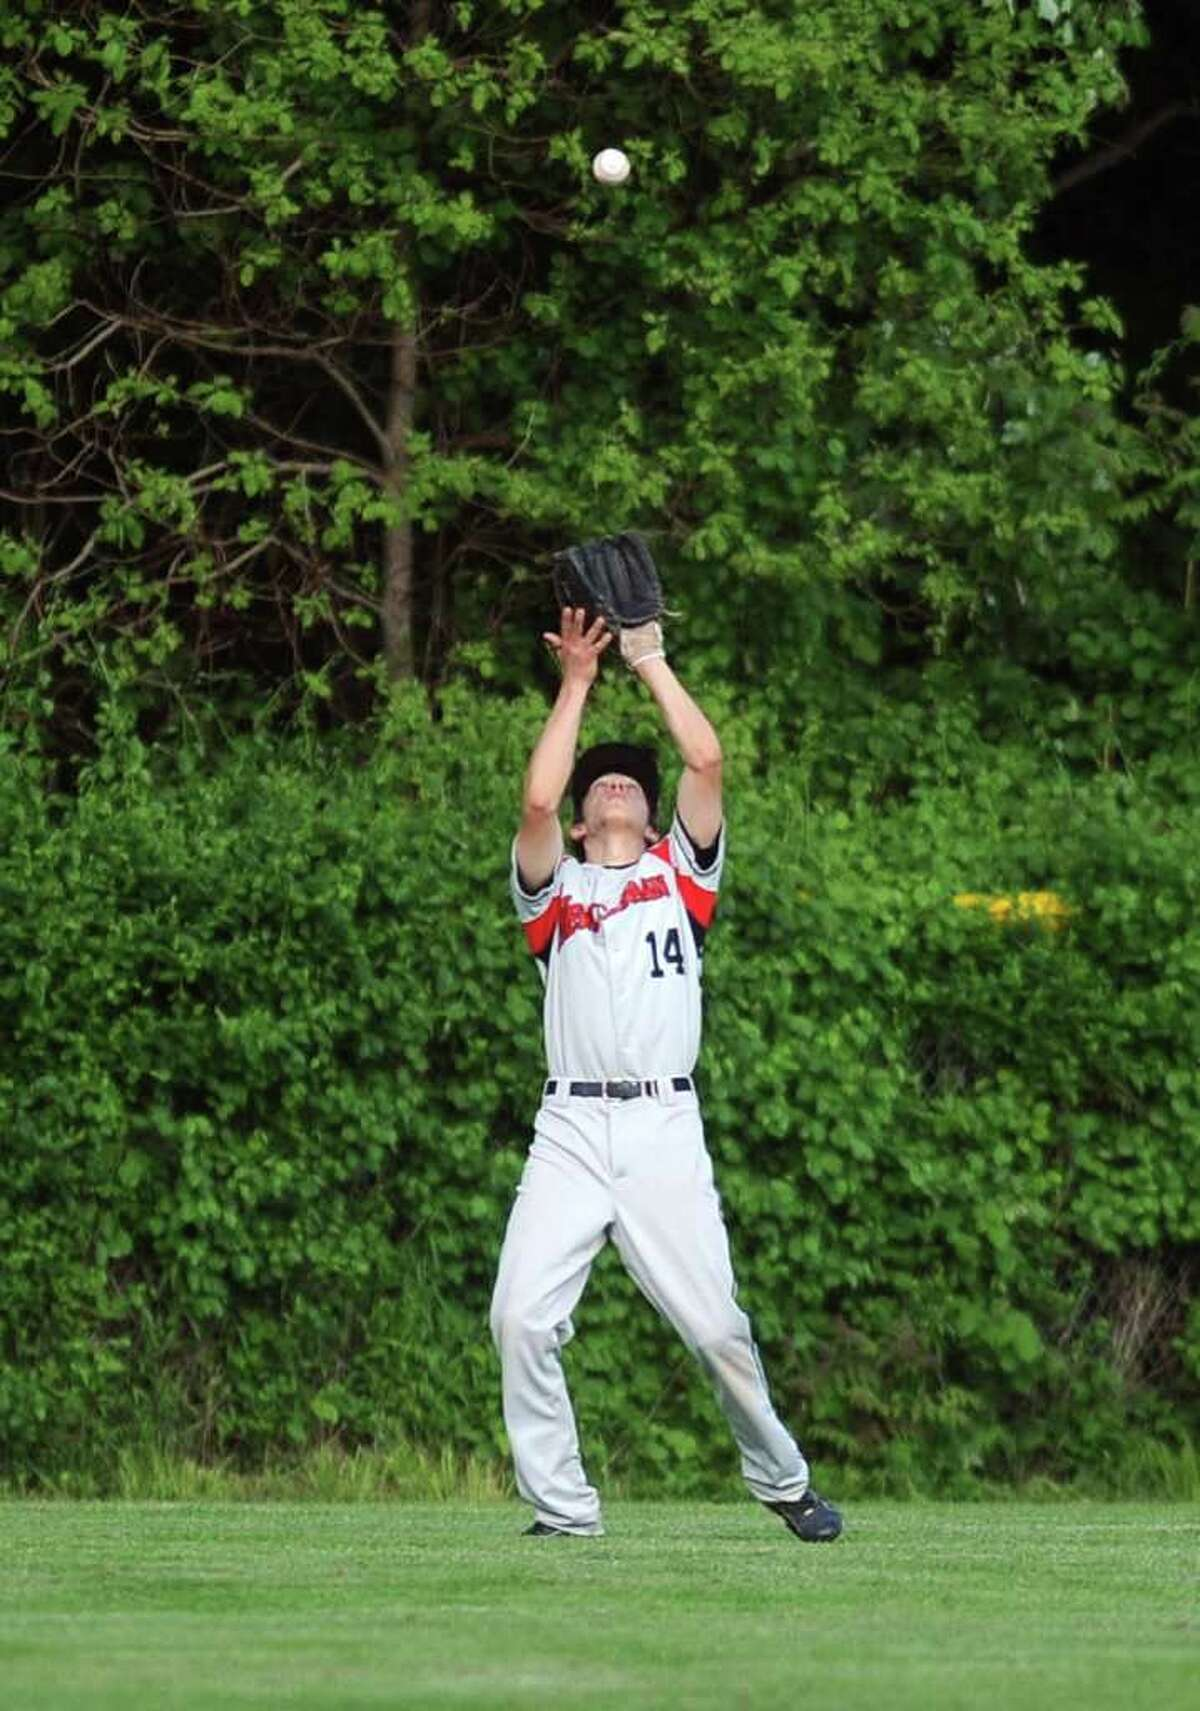 New Canaan's Matthew Sammarco makes a catch in the outfield during Wednesday's FCIAC quarterfinal game at Staples High School on May 25, 2011.